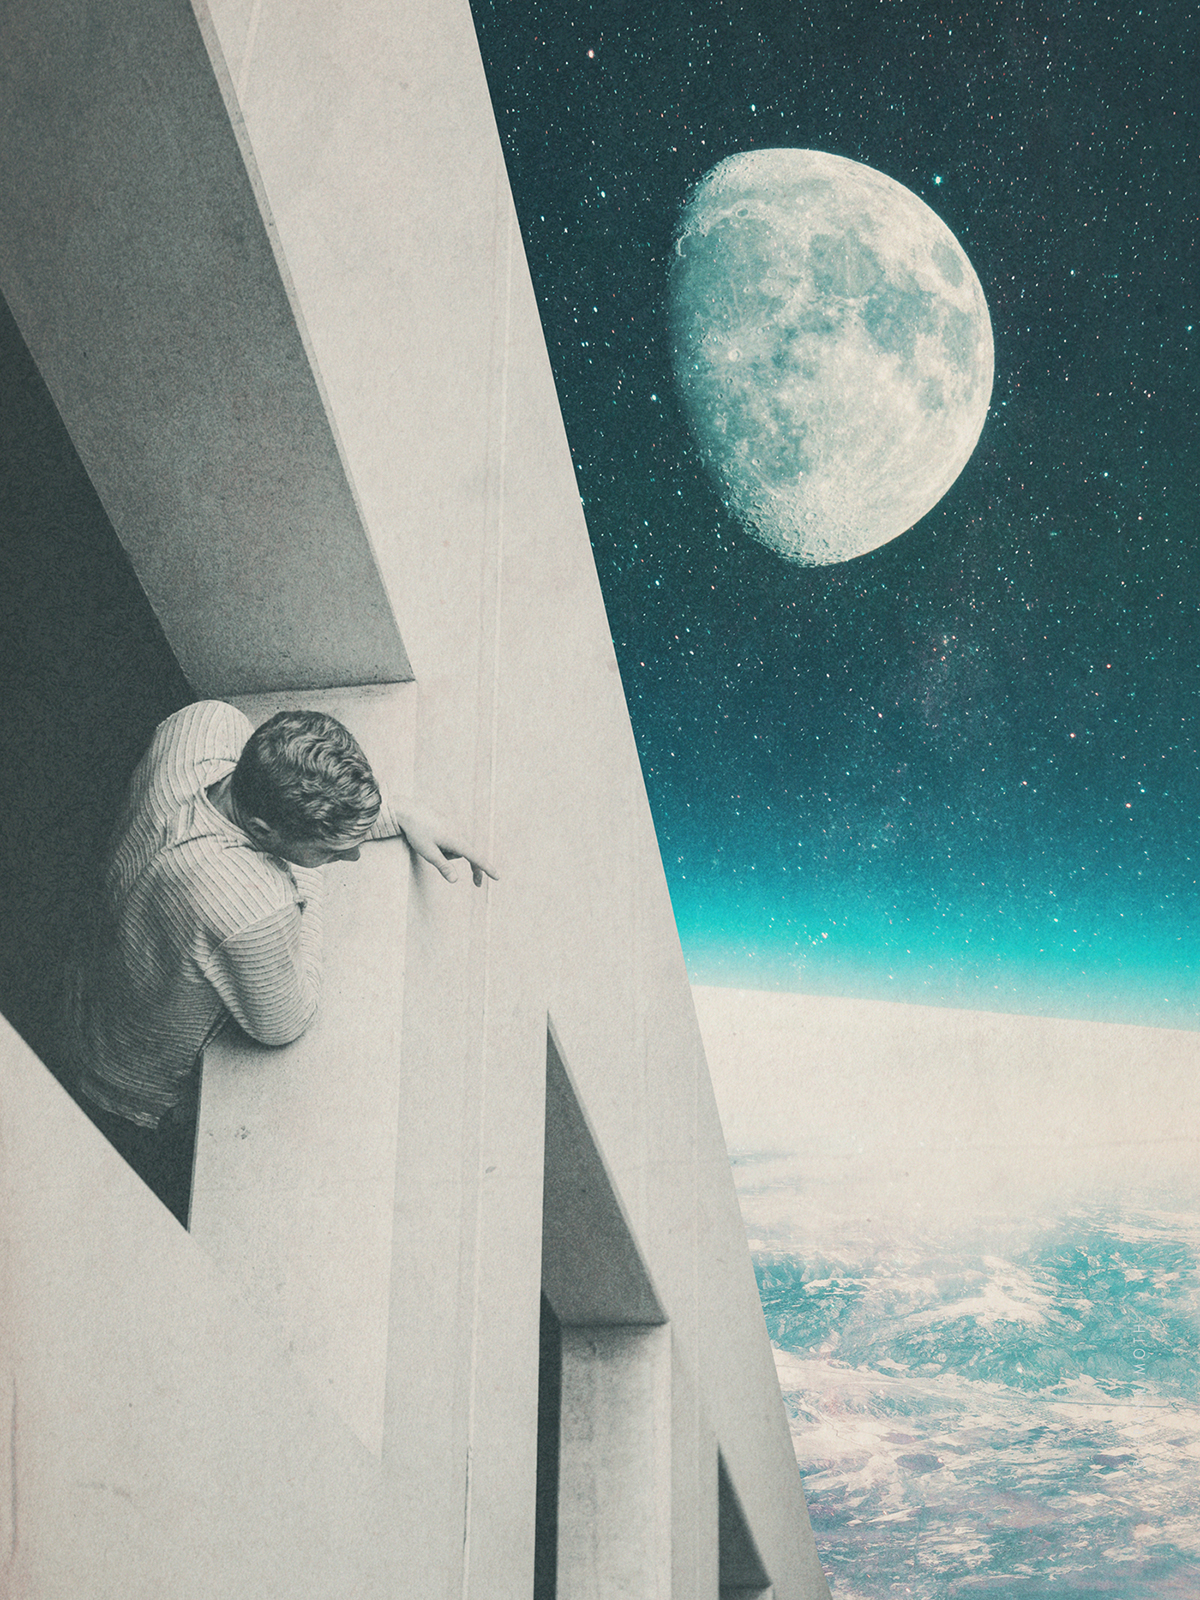 The Past, Future, and Playful Collide in Digital Collages by Anonymous Duo Frank Moth